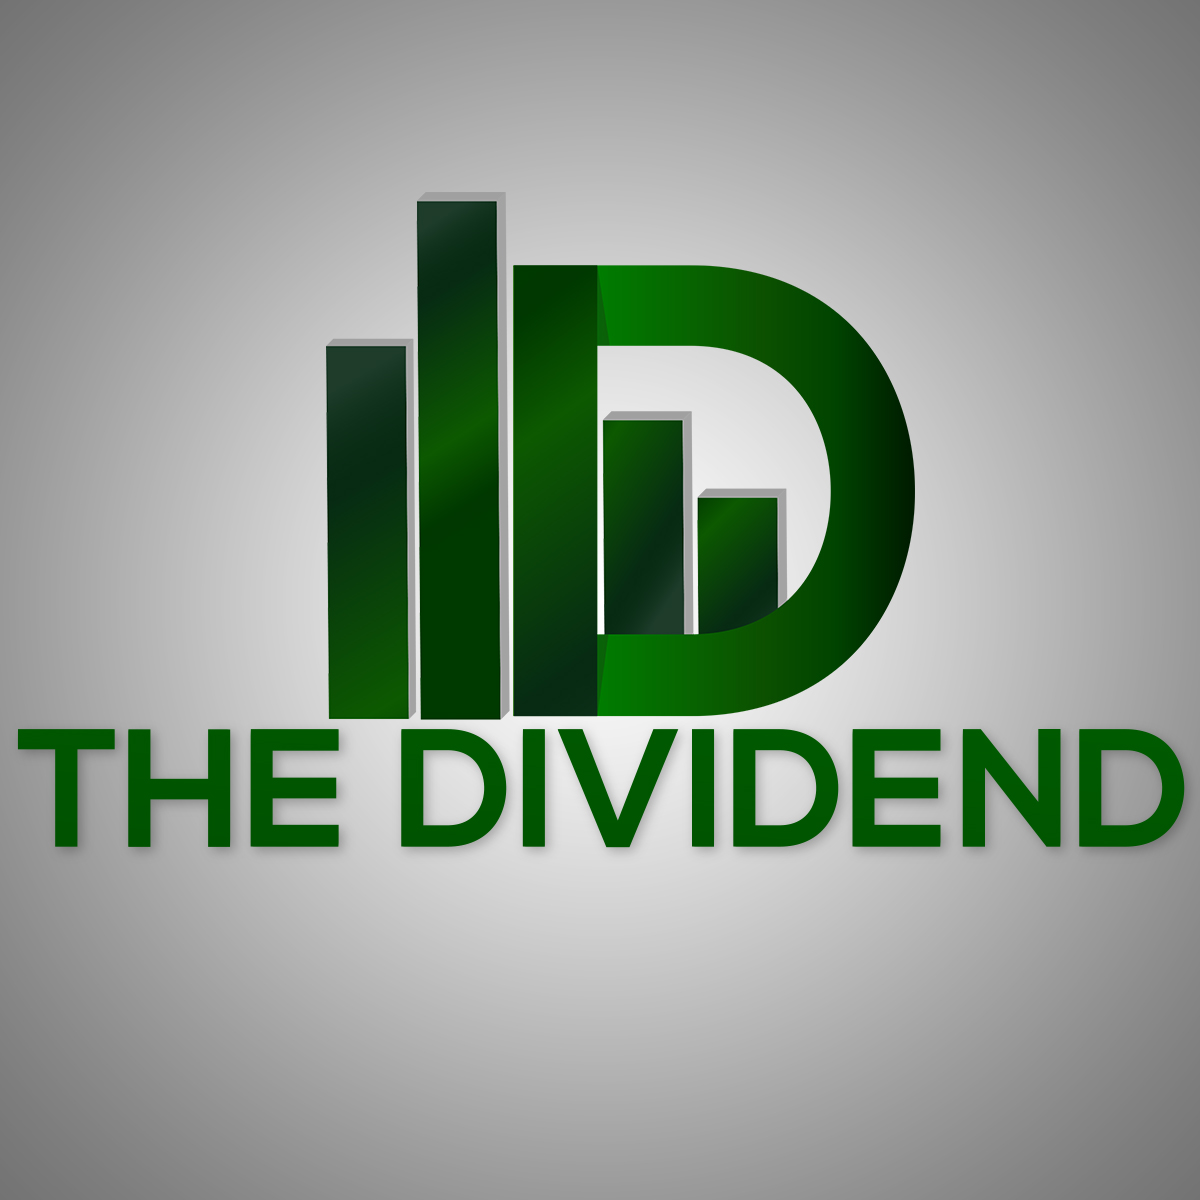 The Dividend